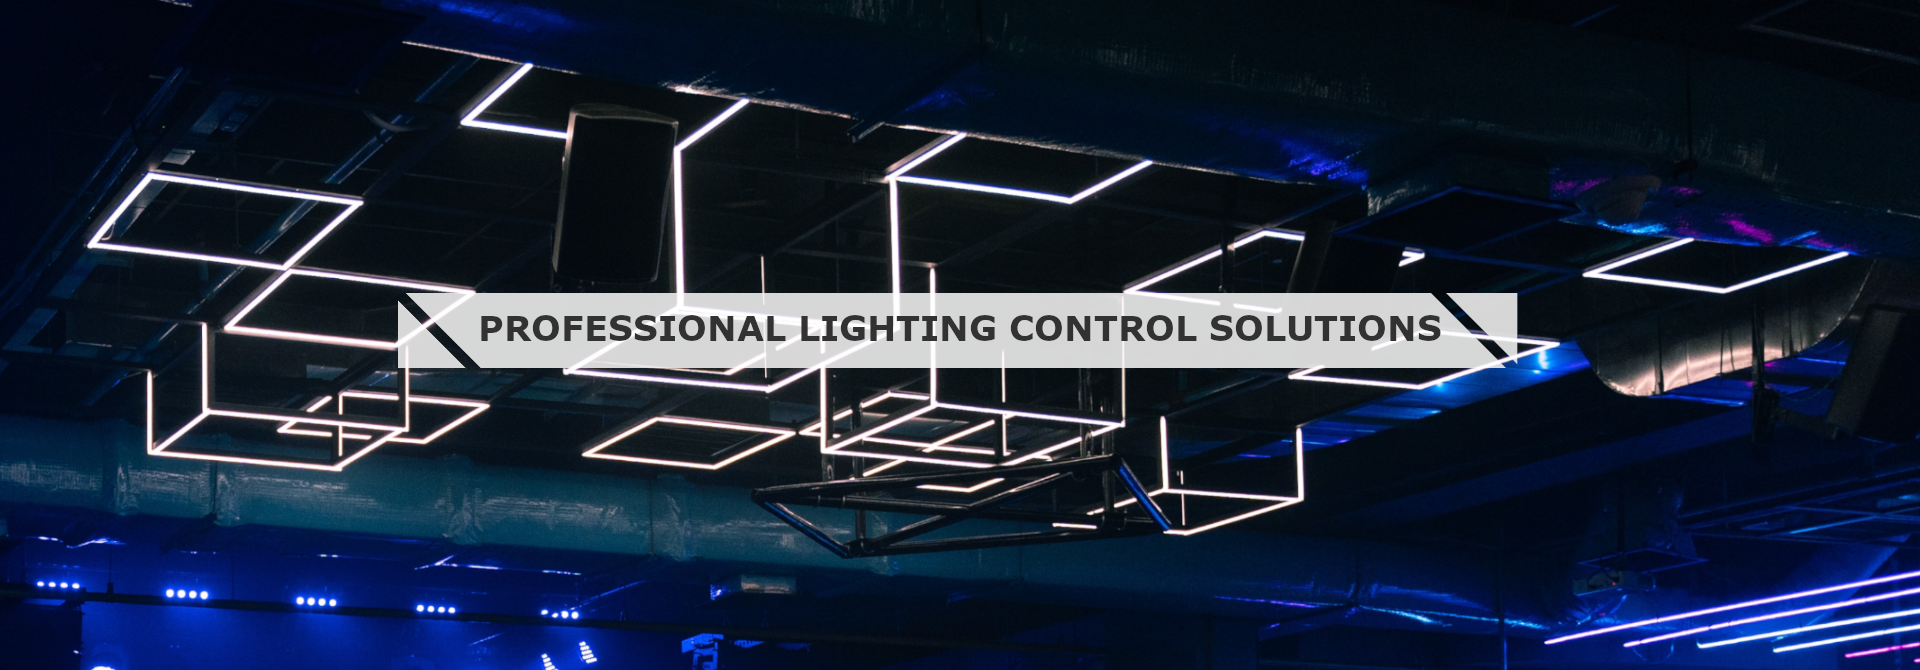 Professional lighting control solutions such as LED dimmer and RGB controller